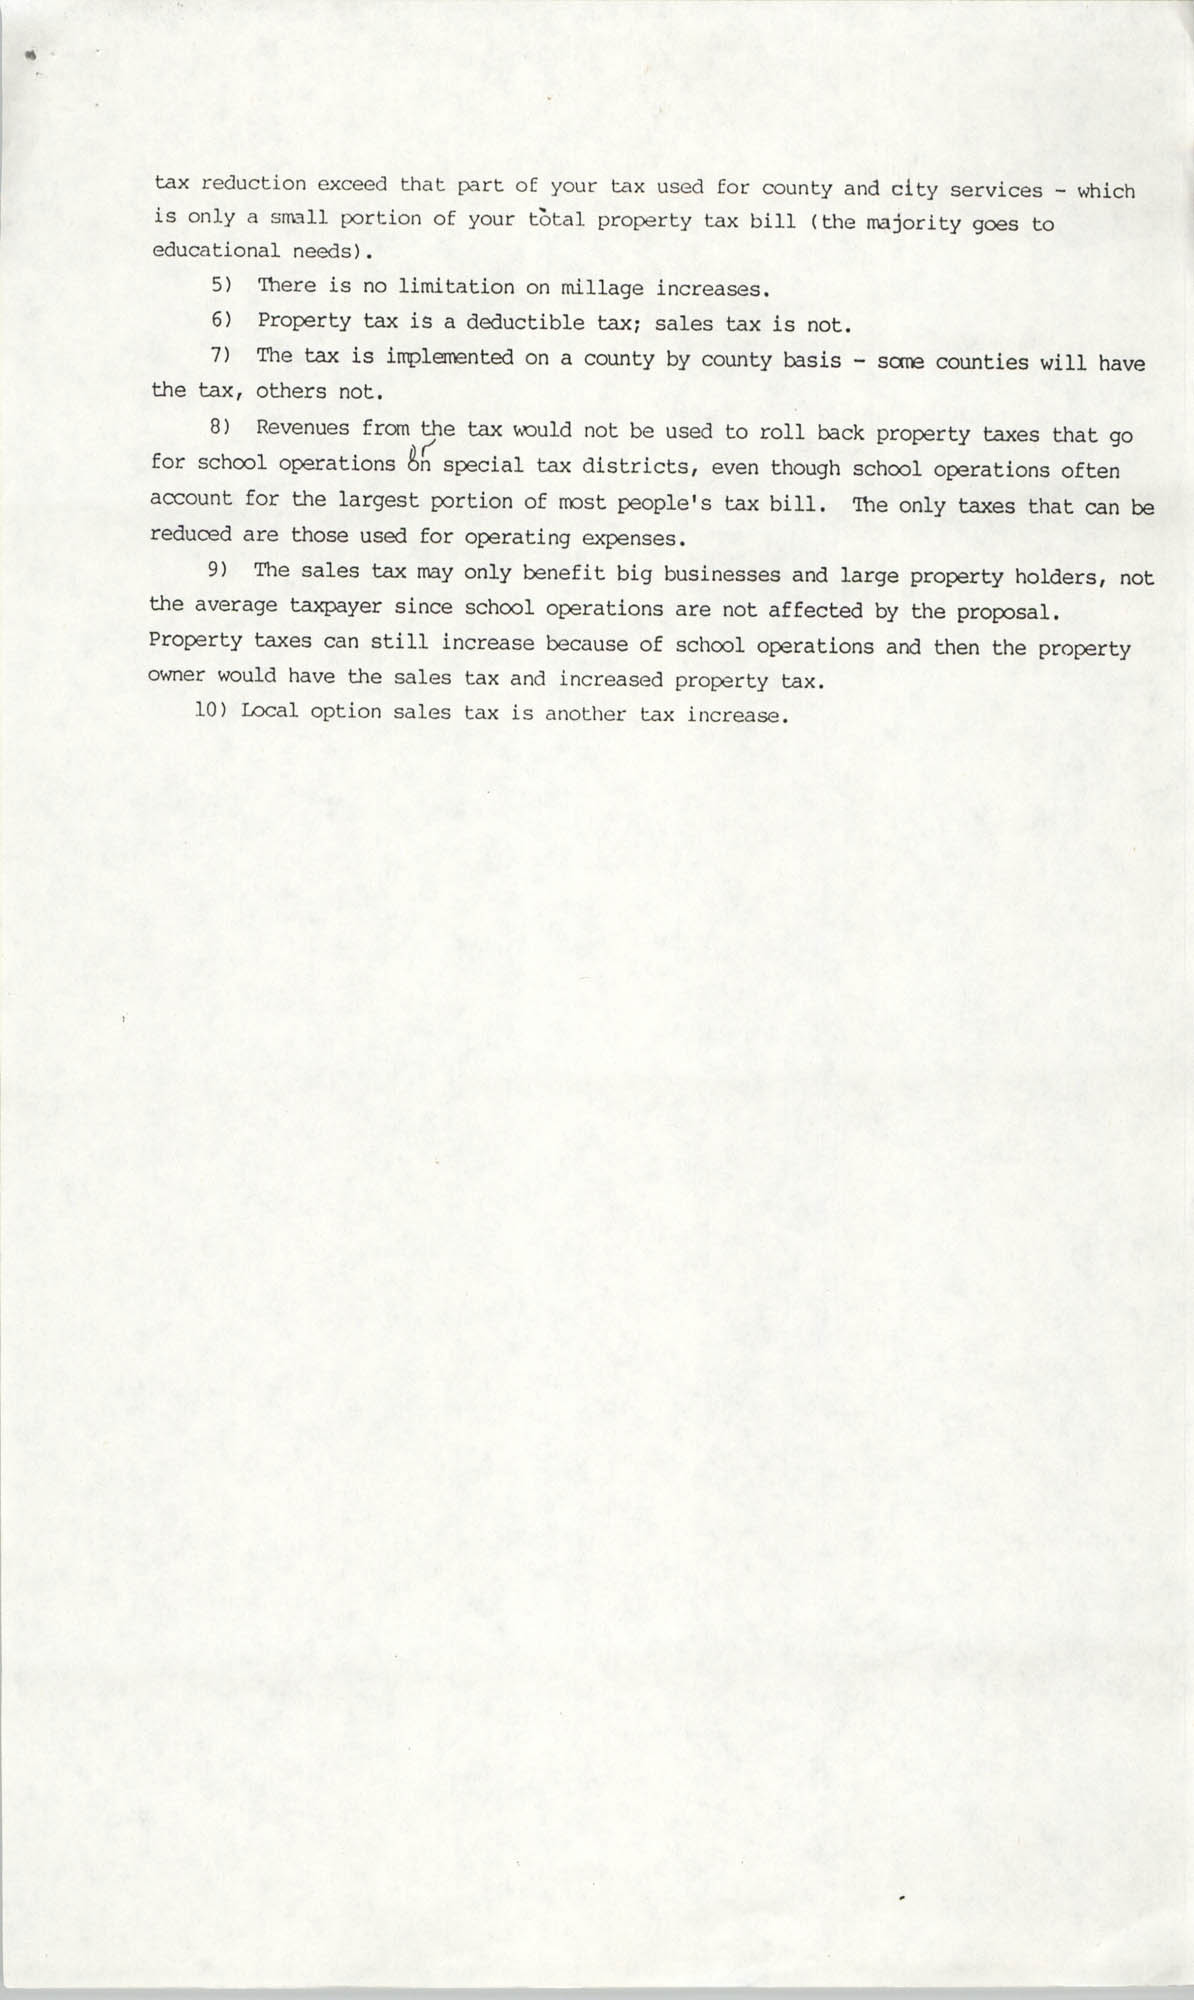 South Carolina Conference of Branches of the NAACP Memorandum, November 12, 1990